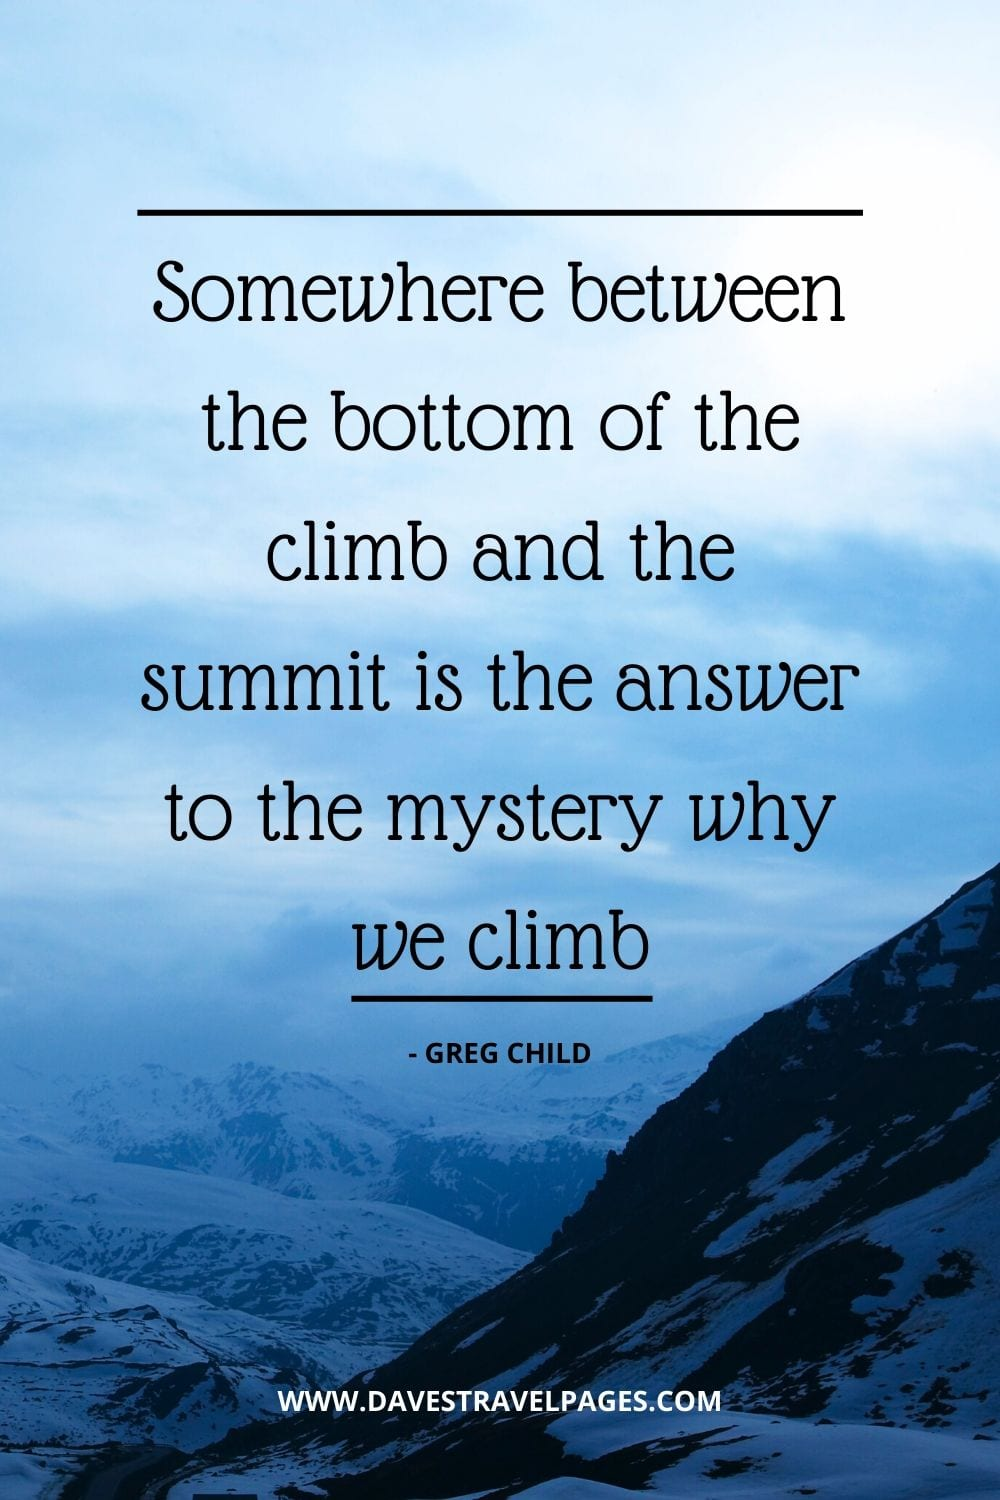 Quotes about climbing: Somewhere between the bottom of the climb and the summit is the answer to the mystery why we climb - Greg Child